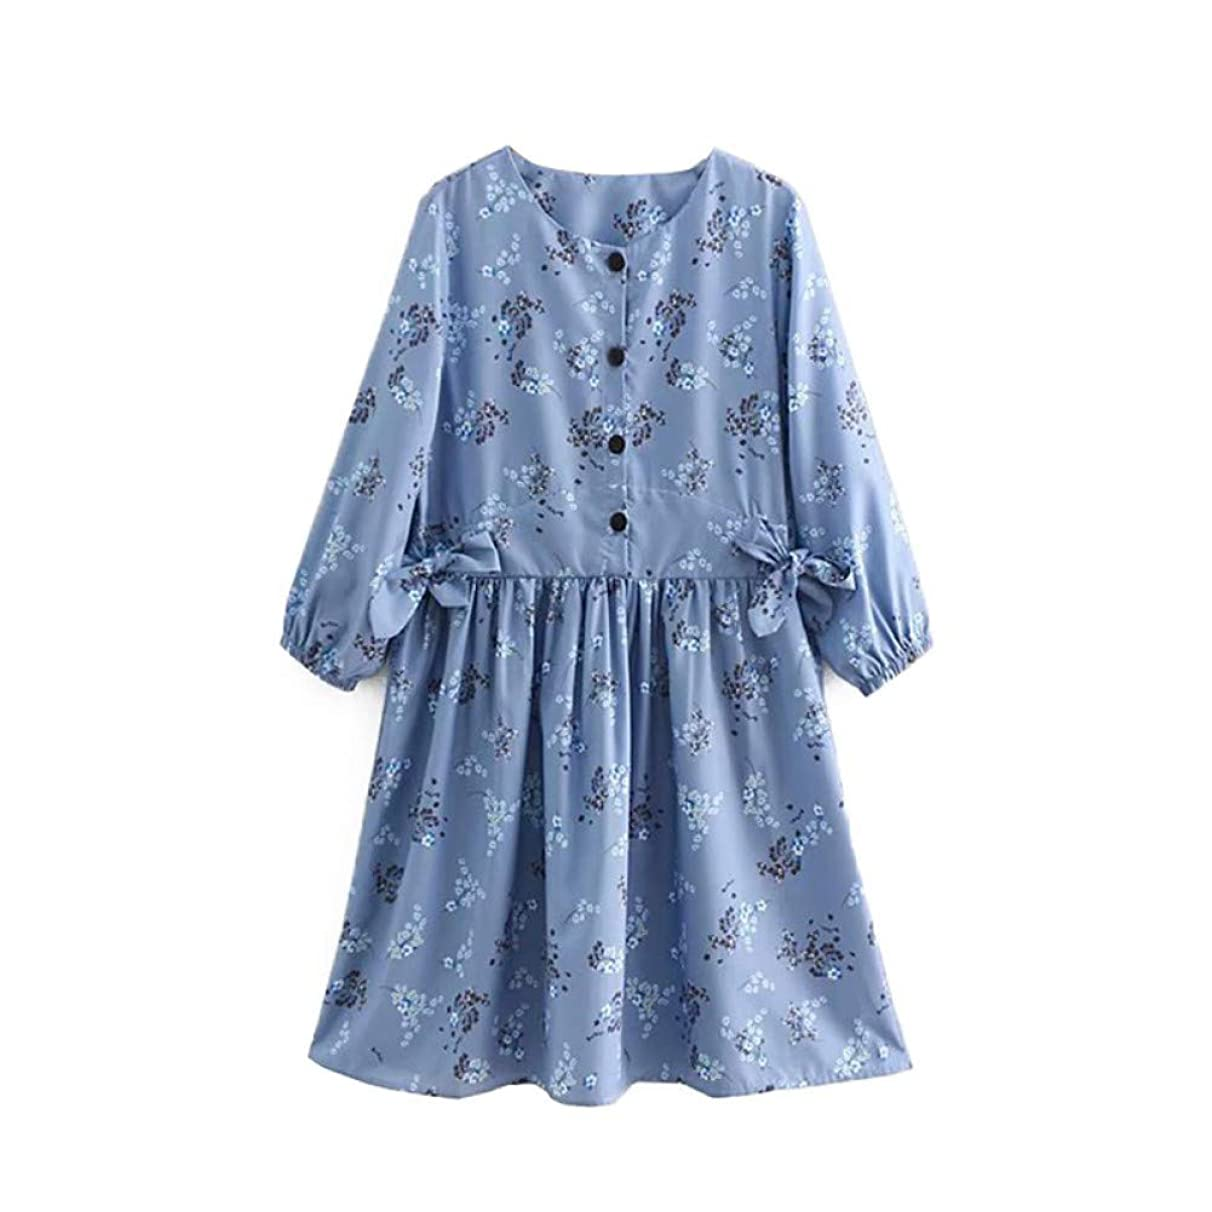 DRLYQYJF Vintage Sweet Button Floral Print Mini Dress Women Fashion O Neck Bow Tie Decorate Short Dresses Casual